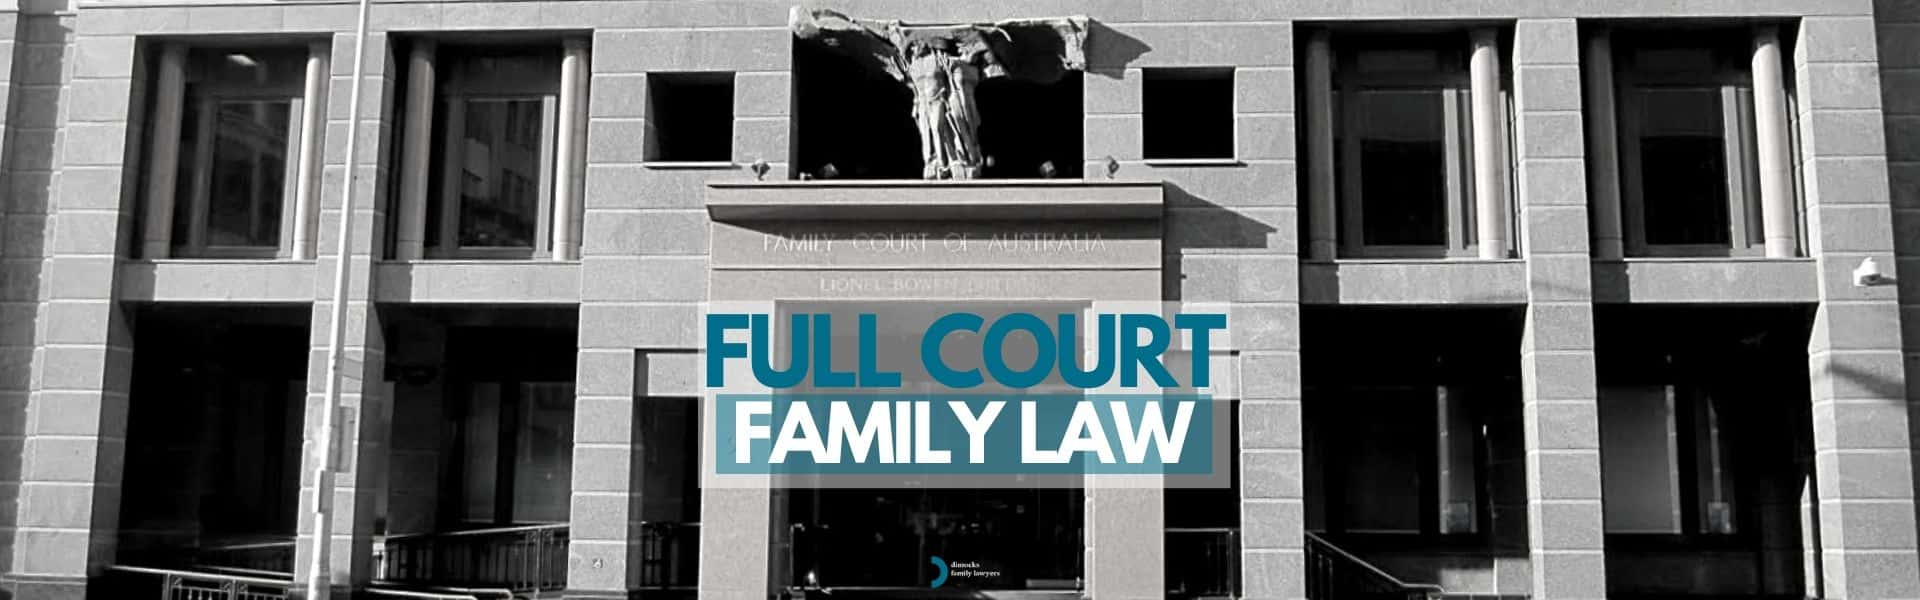 what is the full court in family law sydney lawyer